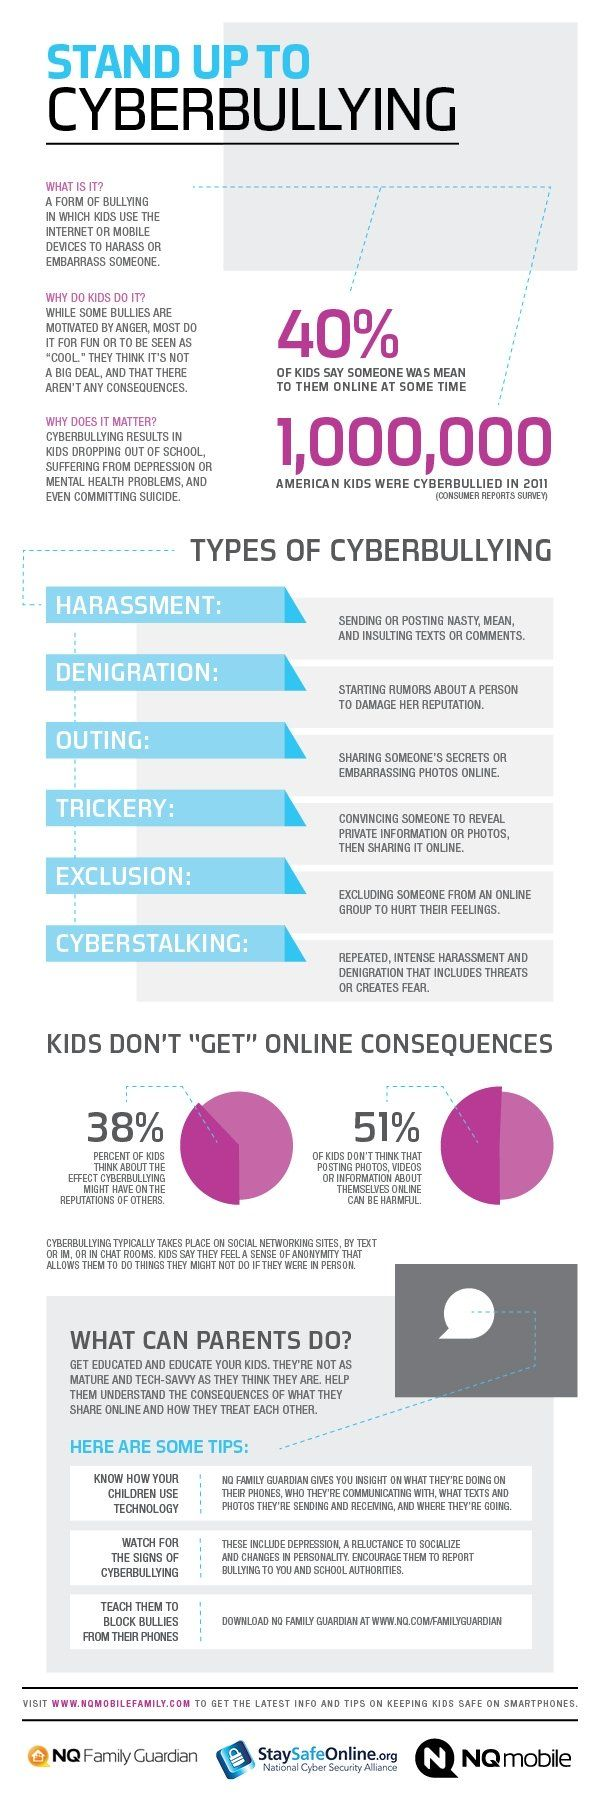 Facts About Cyberbullying Your Family Needs To Know